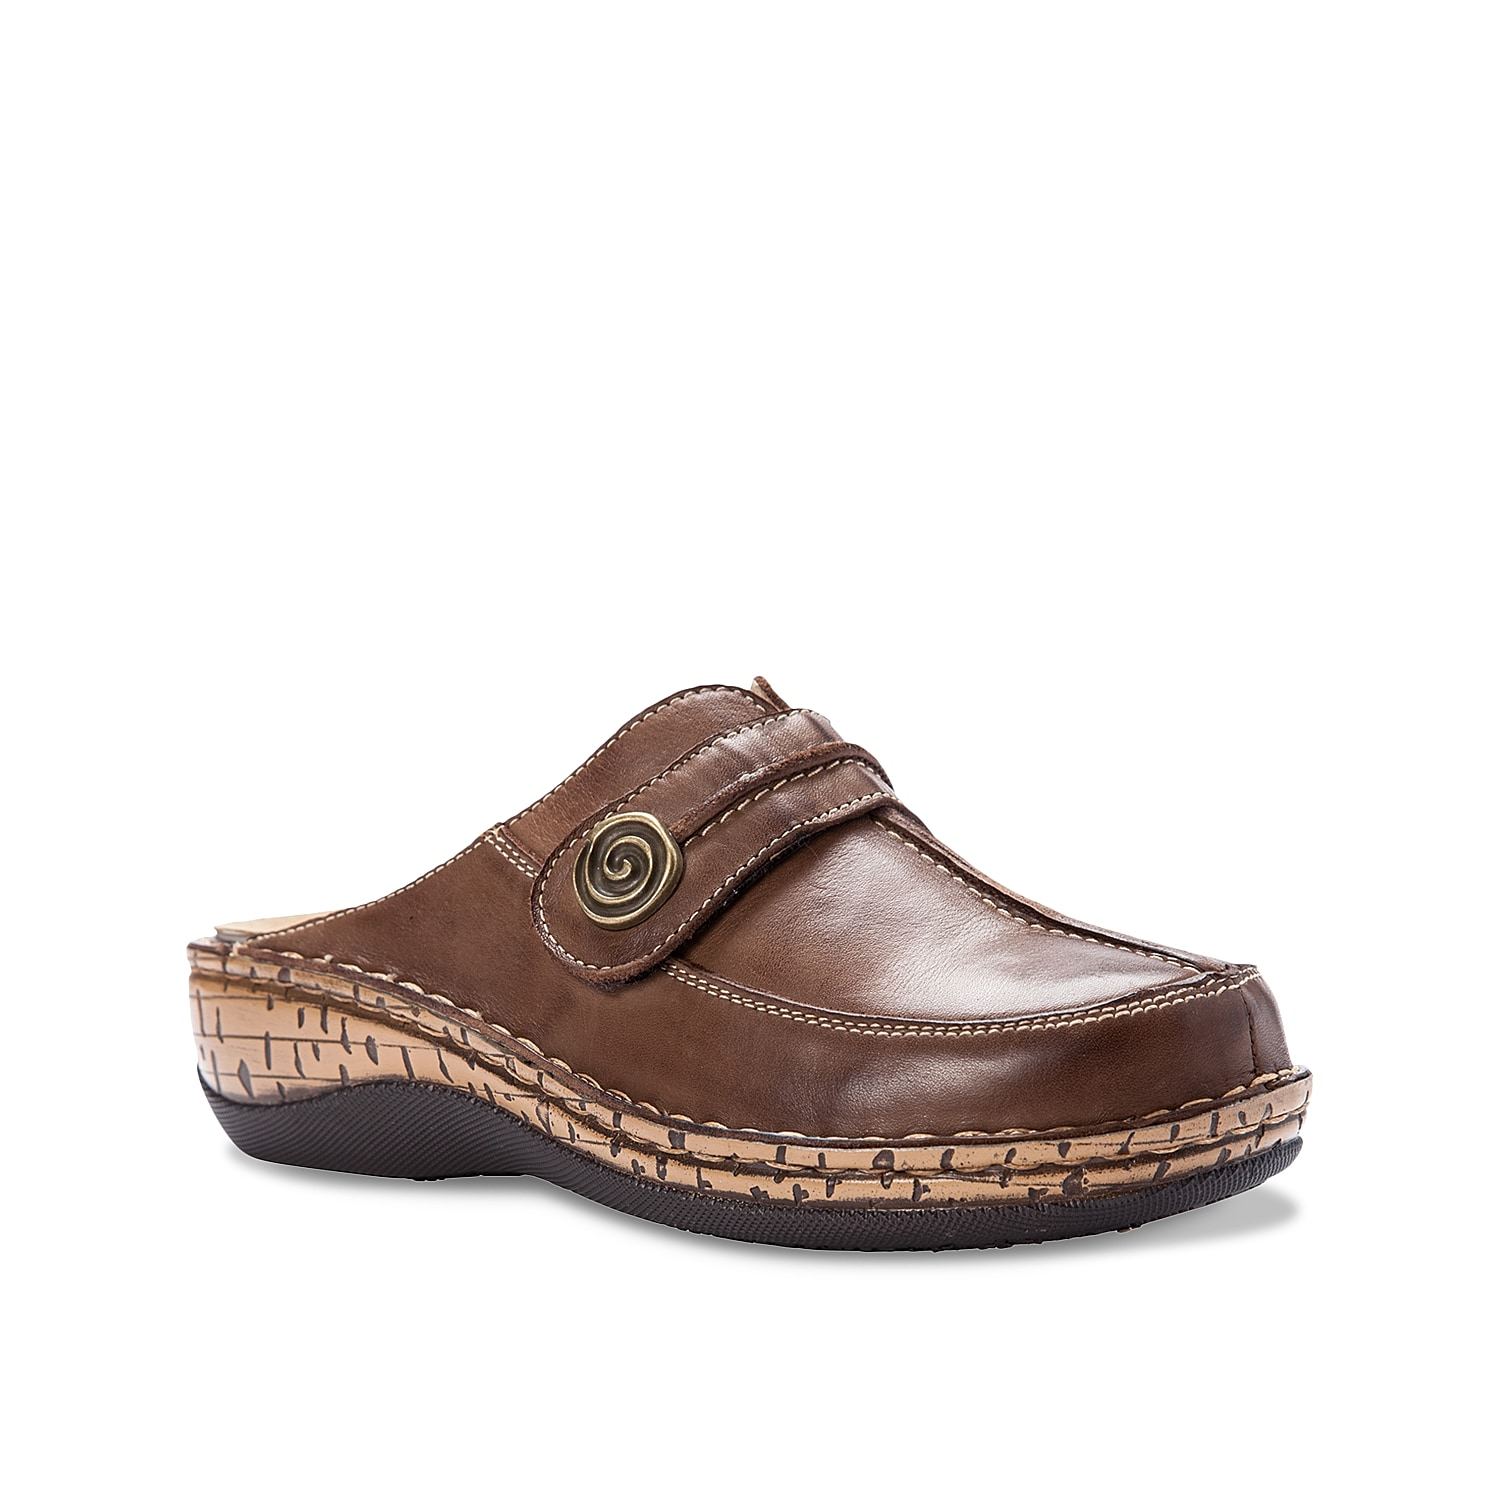 Stay on your feet in the Jana clogs from Propet. These work shoes feature a removable cushioned footbed for custom comfort and are complete with a slip-resistant sole for steady steps.